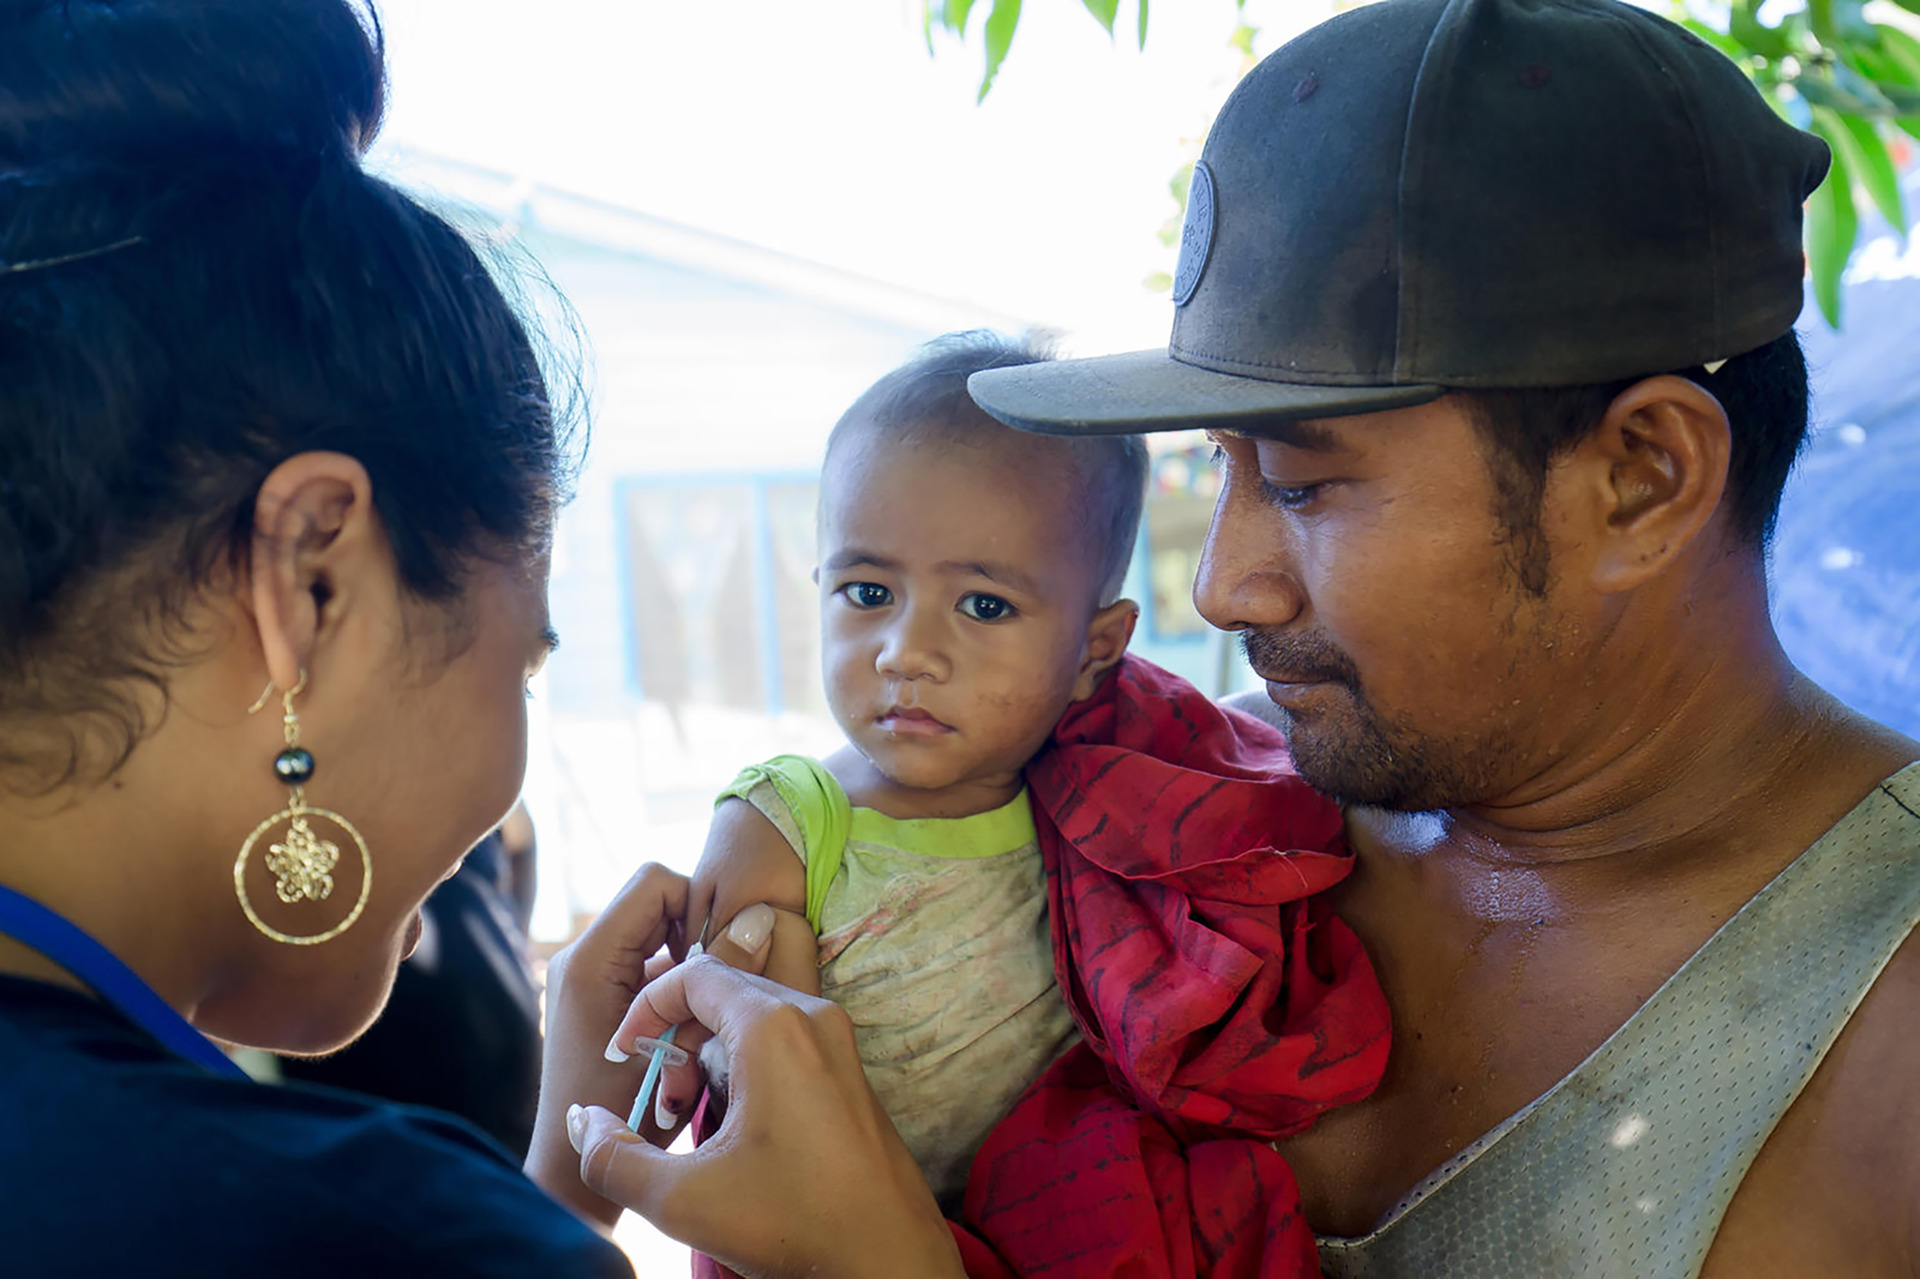 NZ likely source of Samoa's measles epidemic